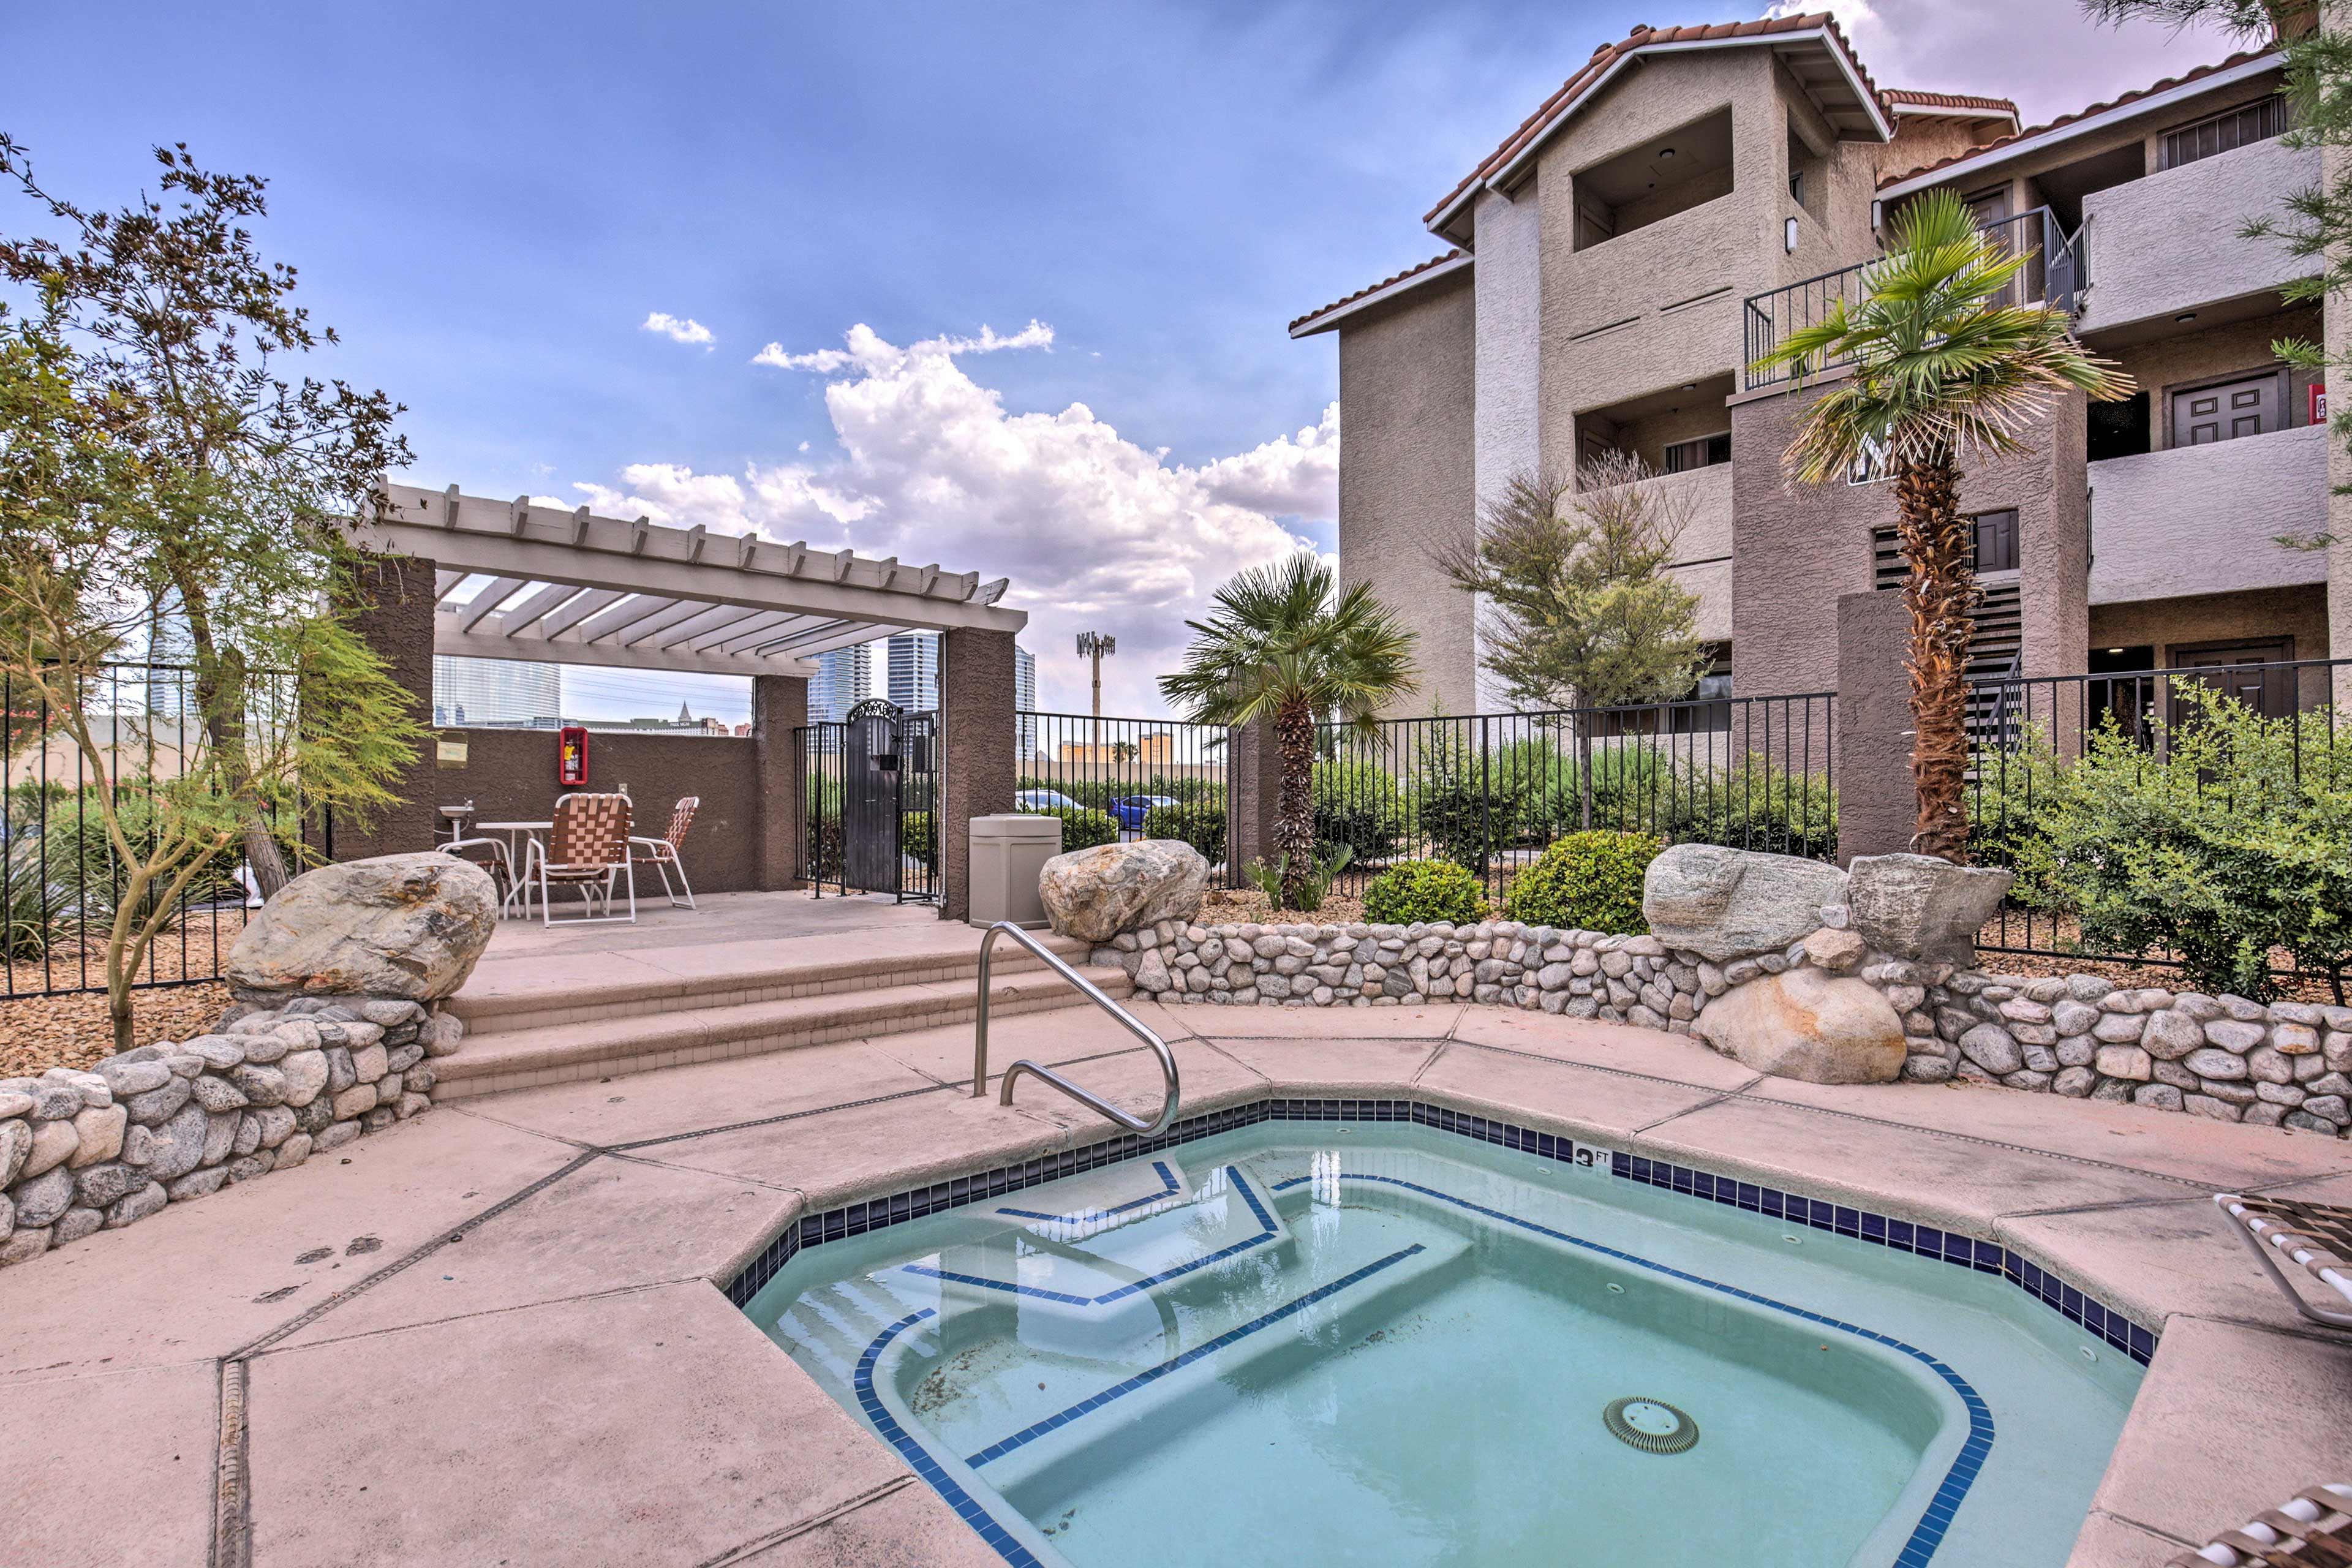 This Las Vegas vacation rental condo is within walking distance of the Bellagio.